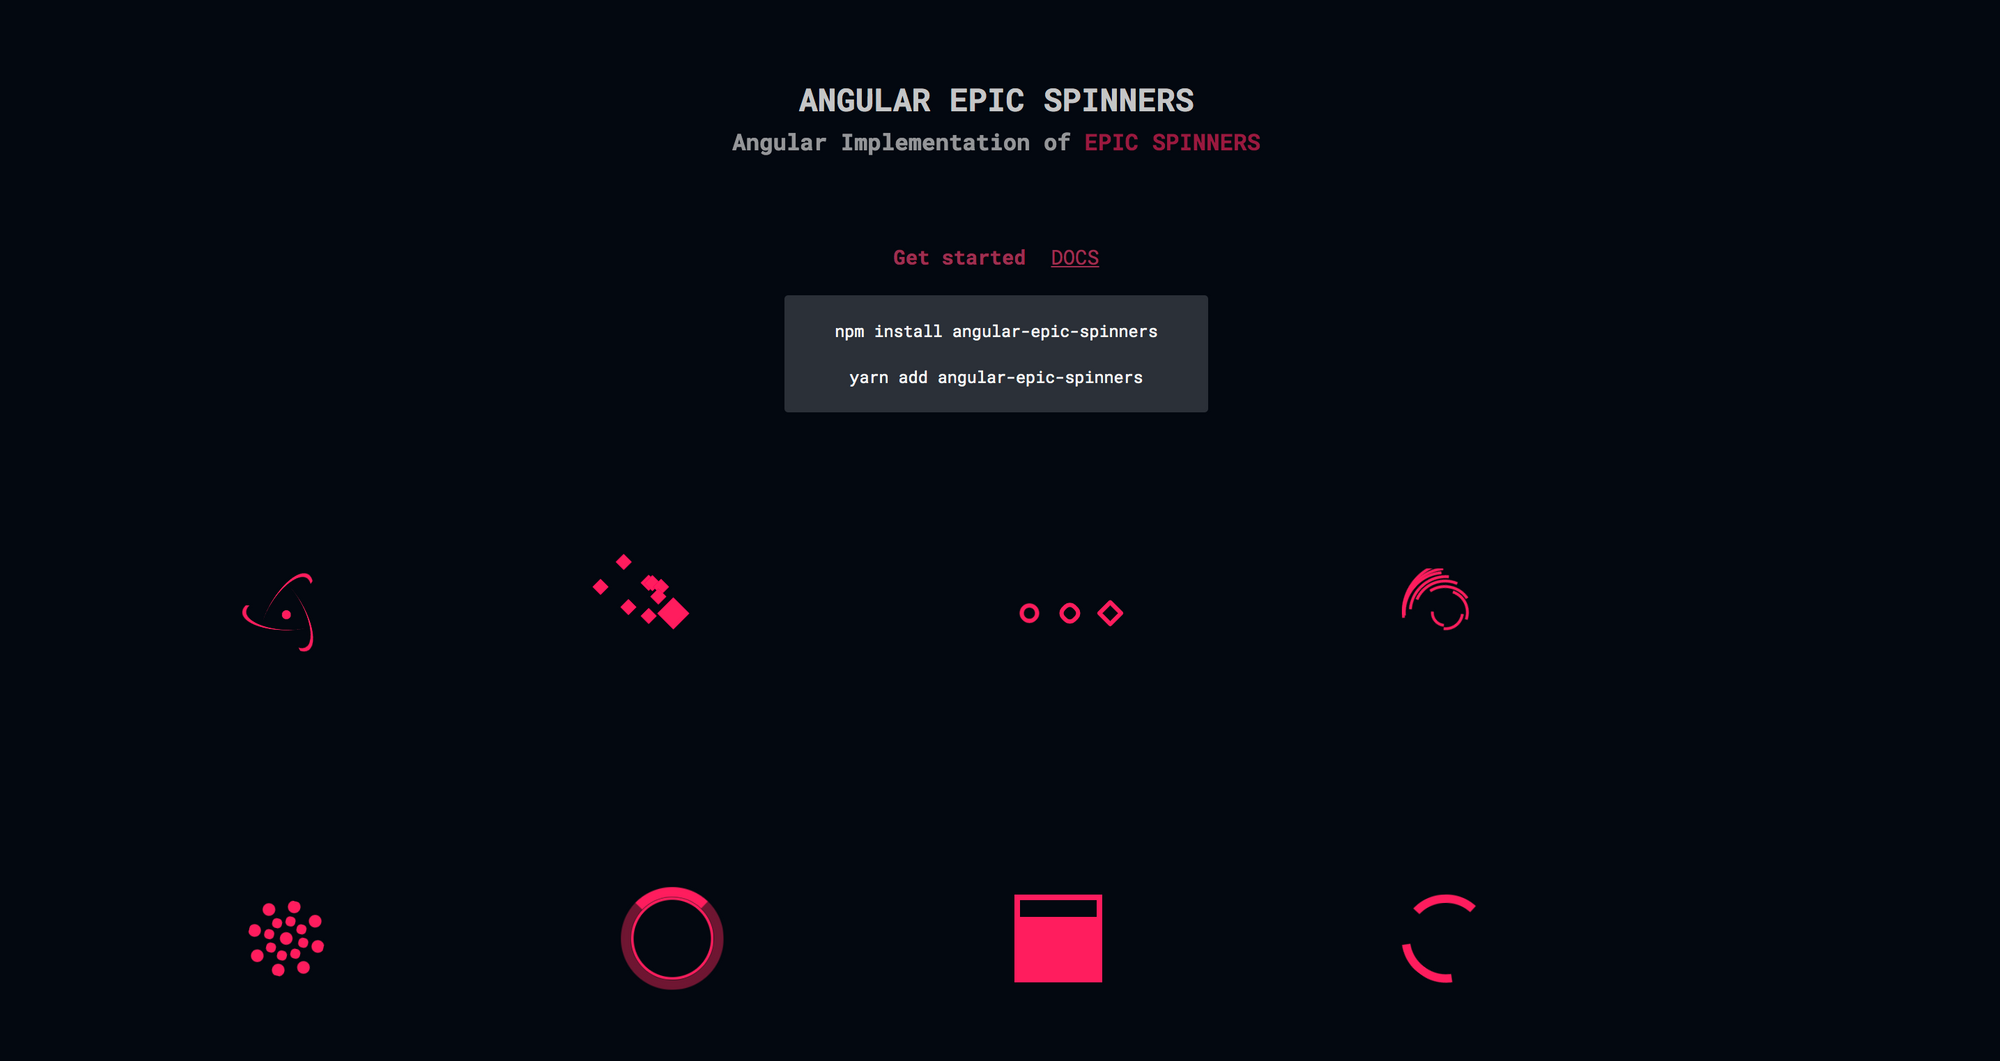 Angular Epic Spinners - Angular